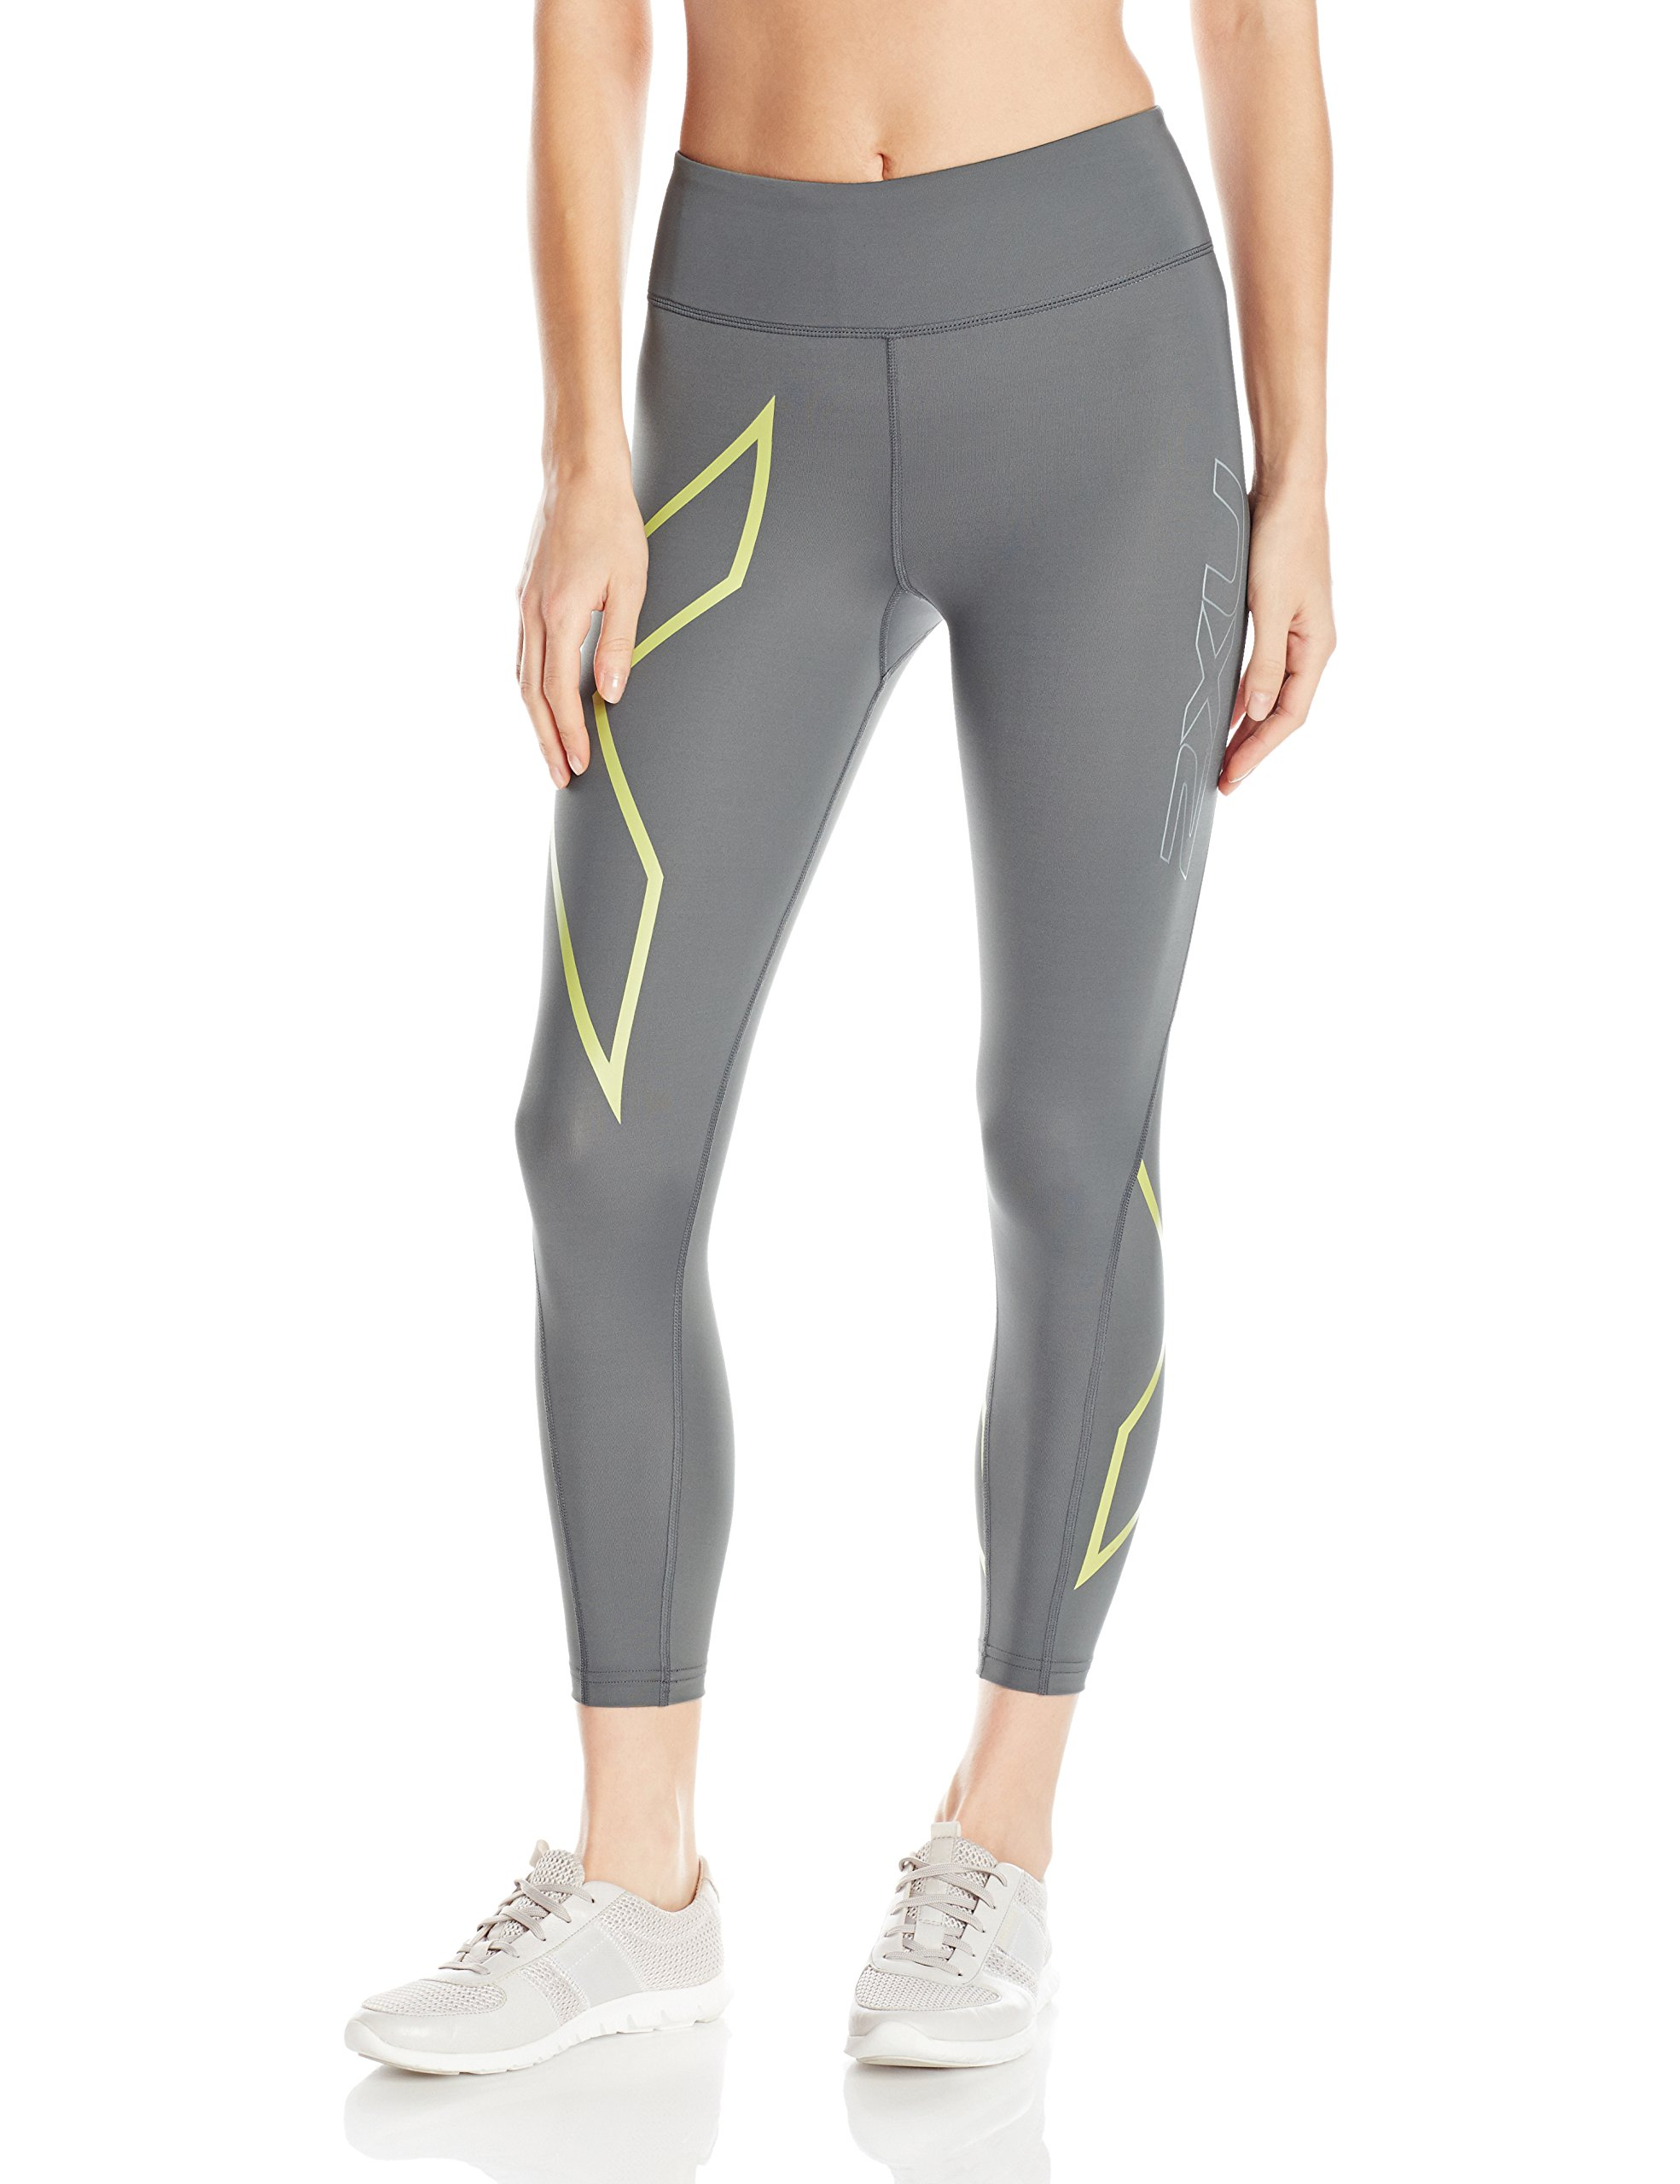 2XU Women's 7/8 Mid-Rise Compression Tights, Small, Slate/Lime Light